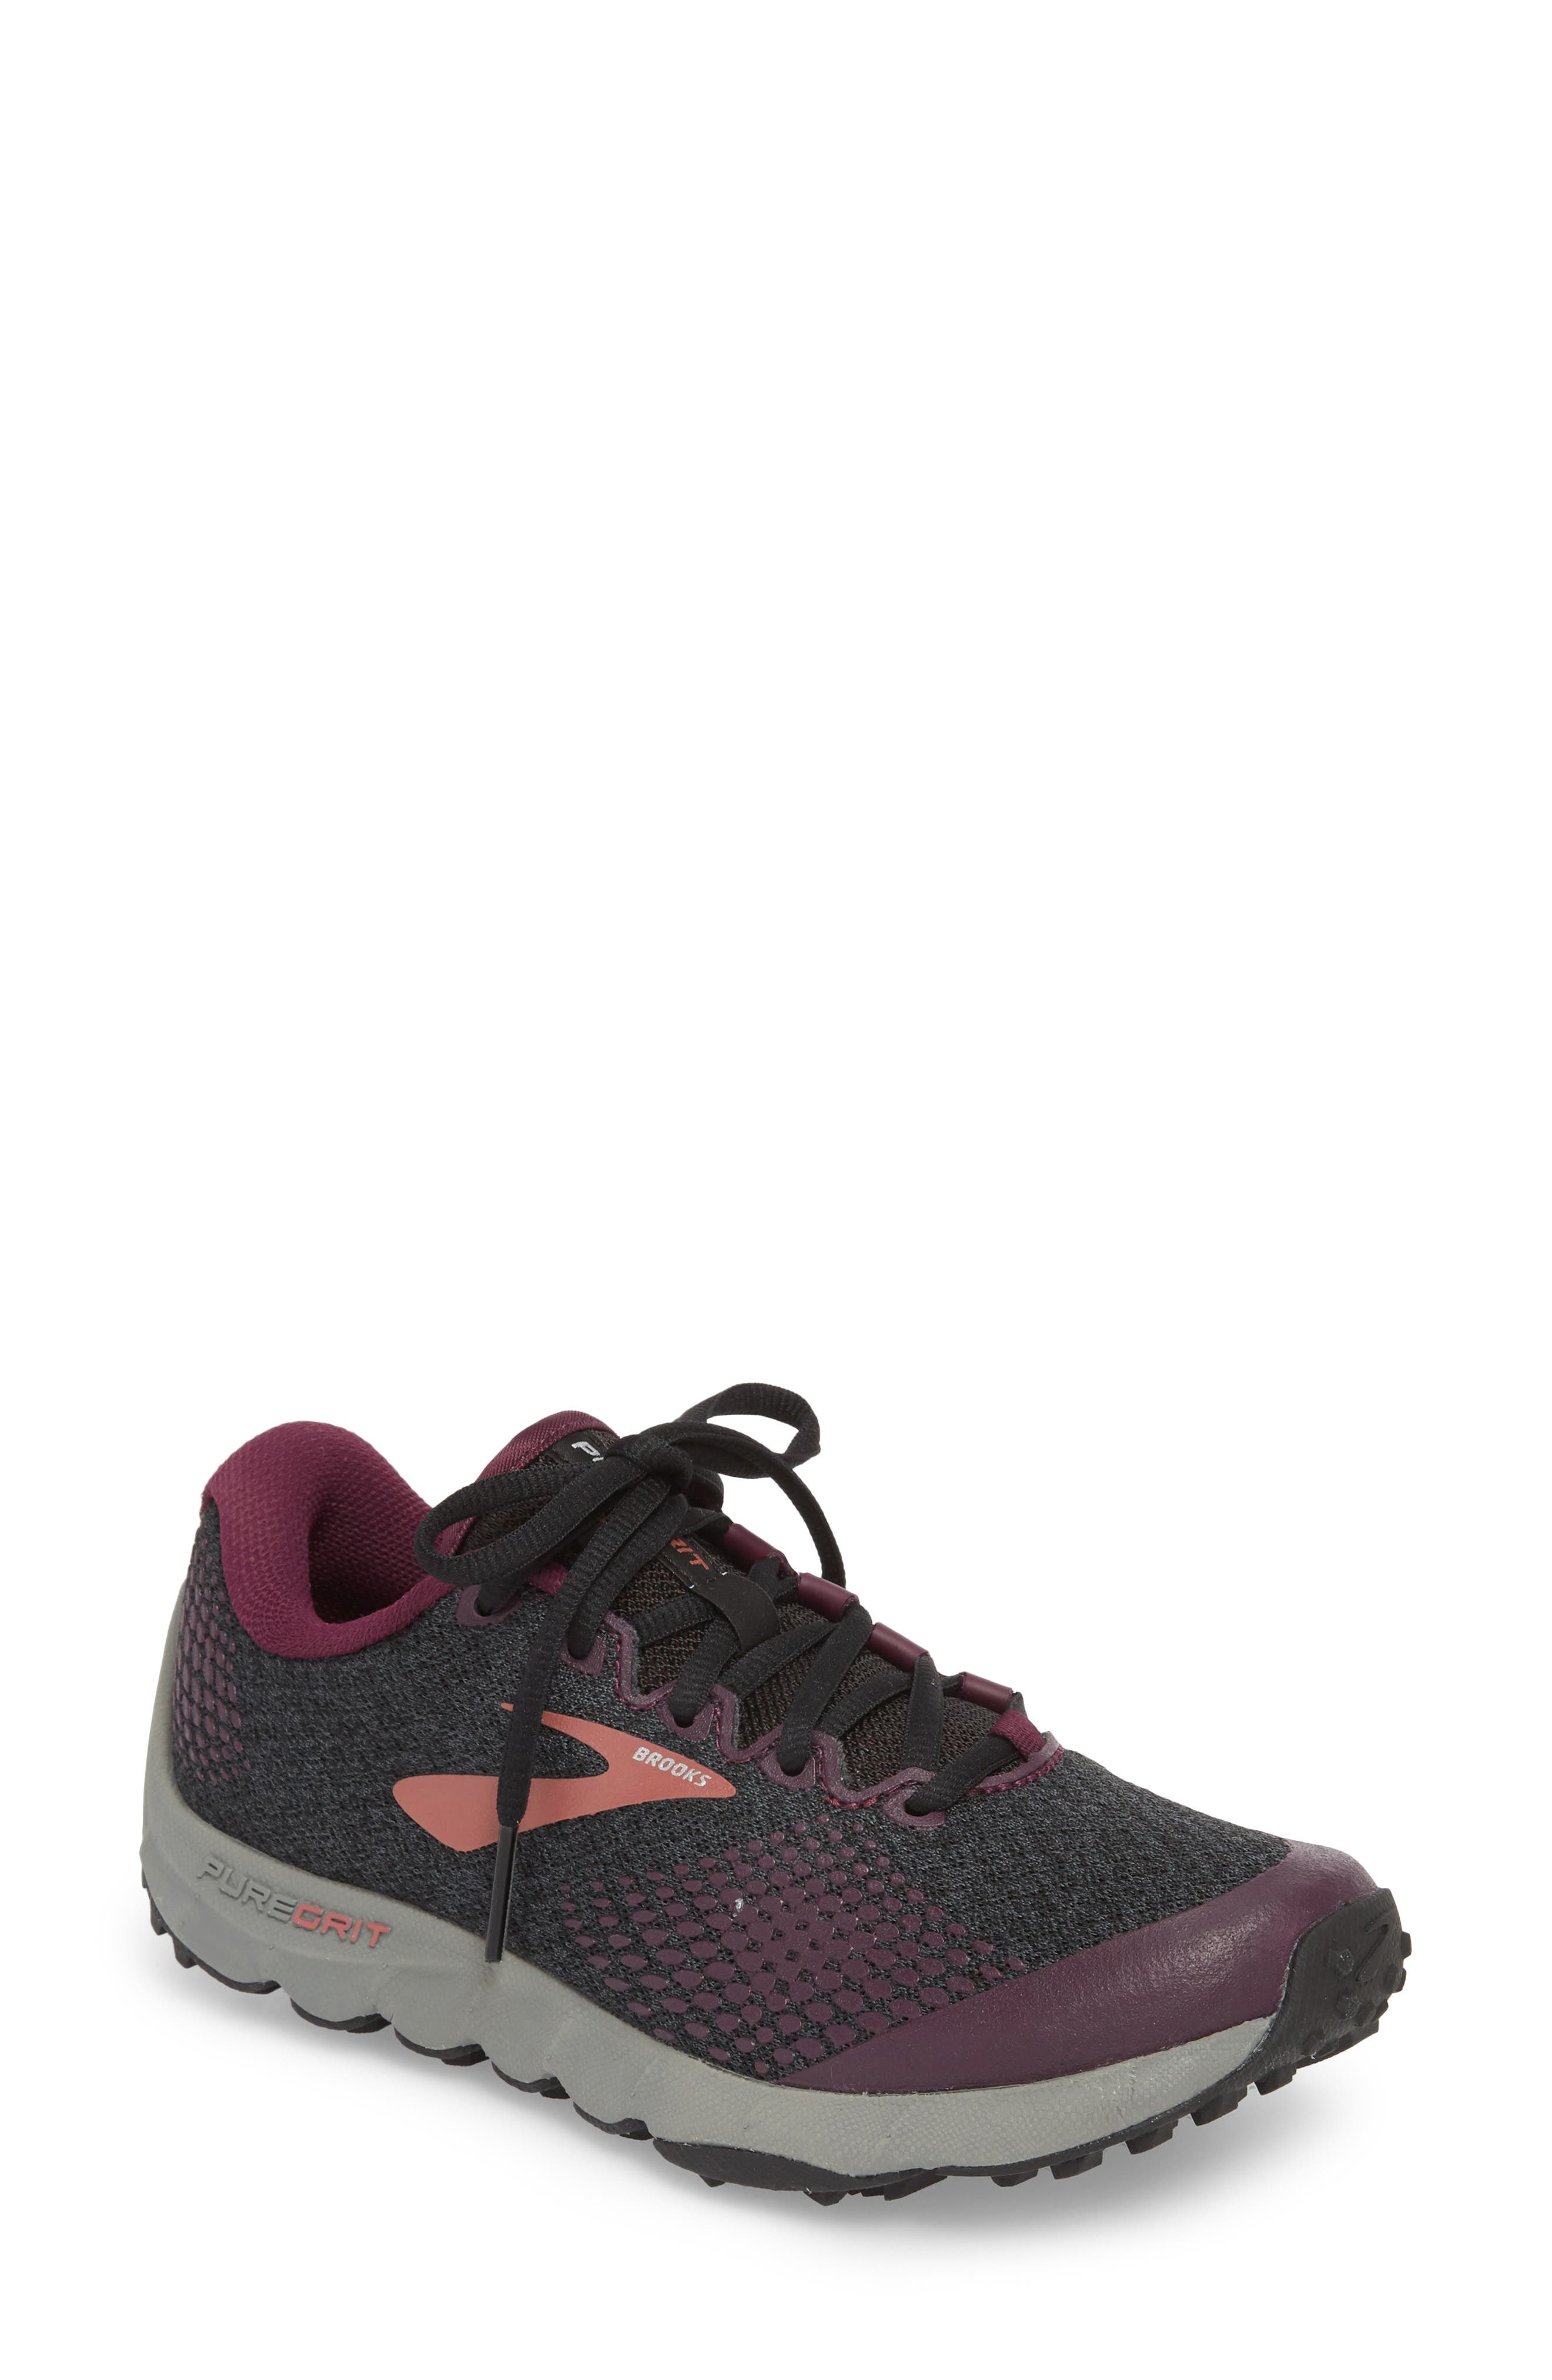 PureGrit 7 Trail Running Shoe,                         Main,                         color, BLACK/ PURPLE/ GREY